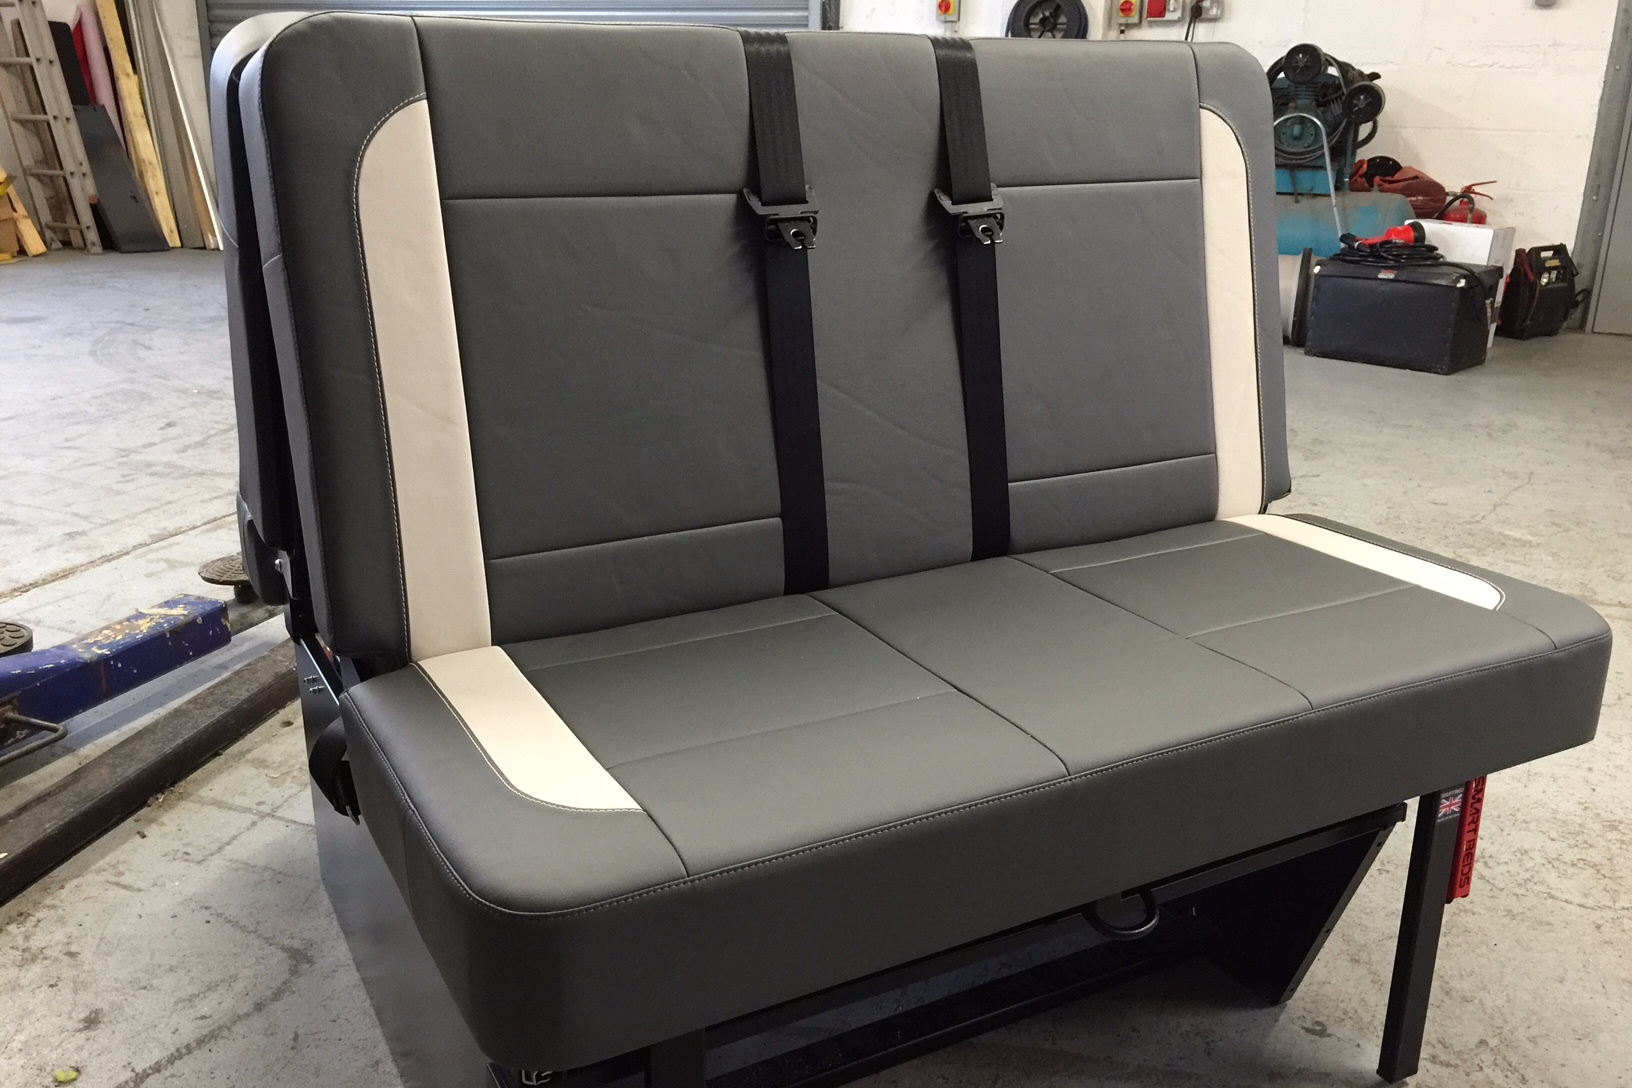 Standard - Non M1 Tested, from £555excluding fitting, upholstery , and delivery